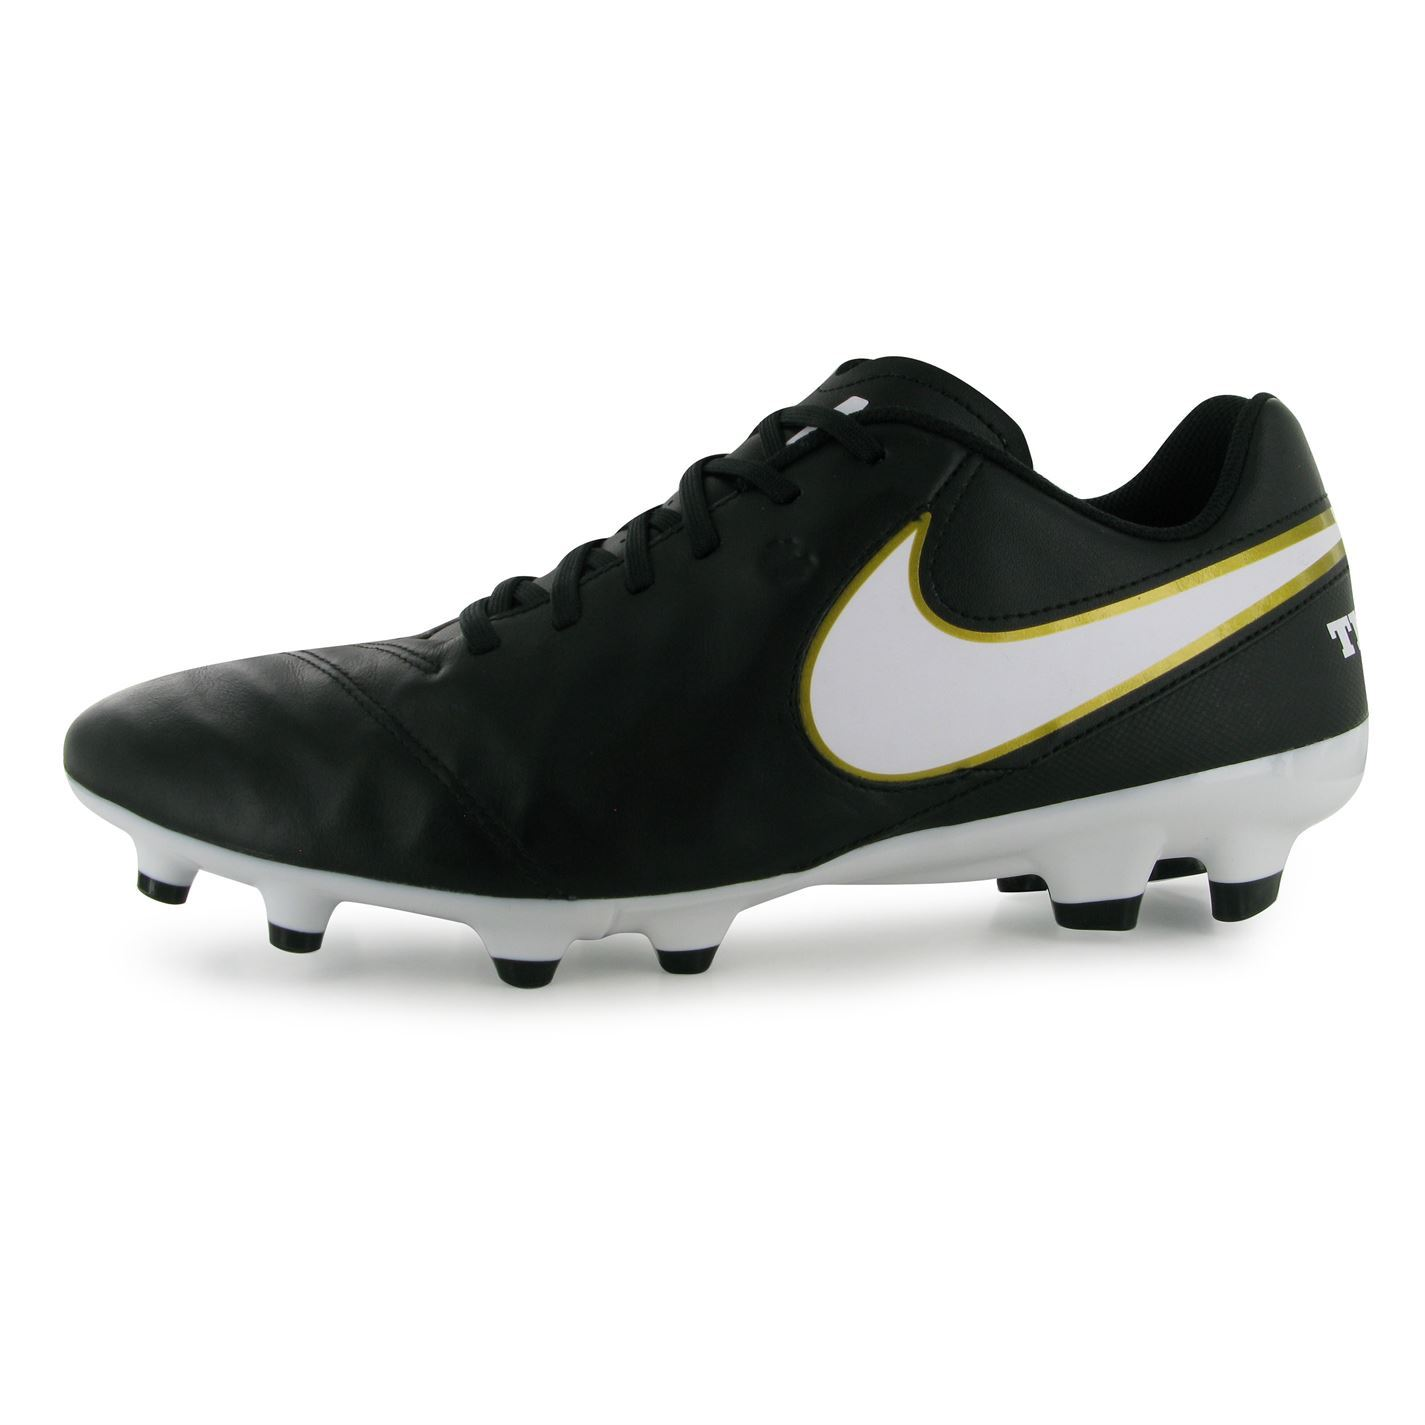 watch 4414e ce111 Details about Nike Tiempo Genio FG Firm Ground Football Boots Mens Blk/Wht  Soccer Cleats Shoes